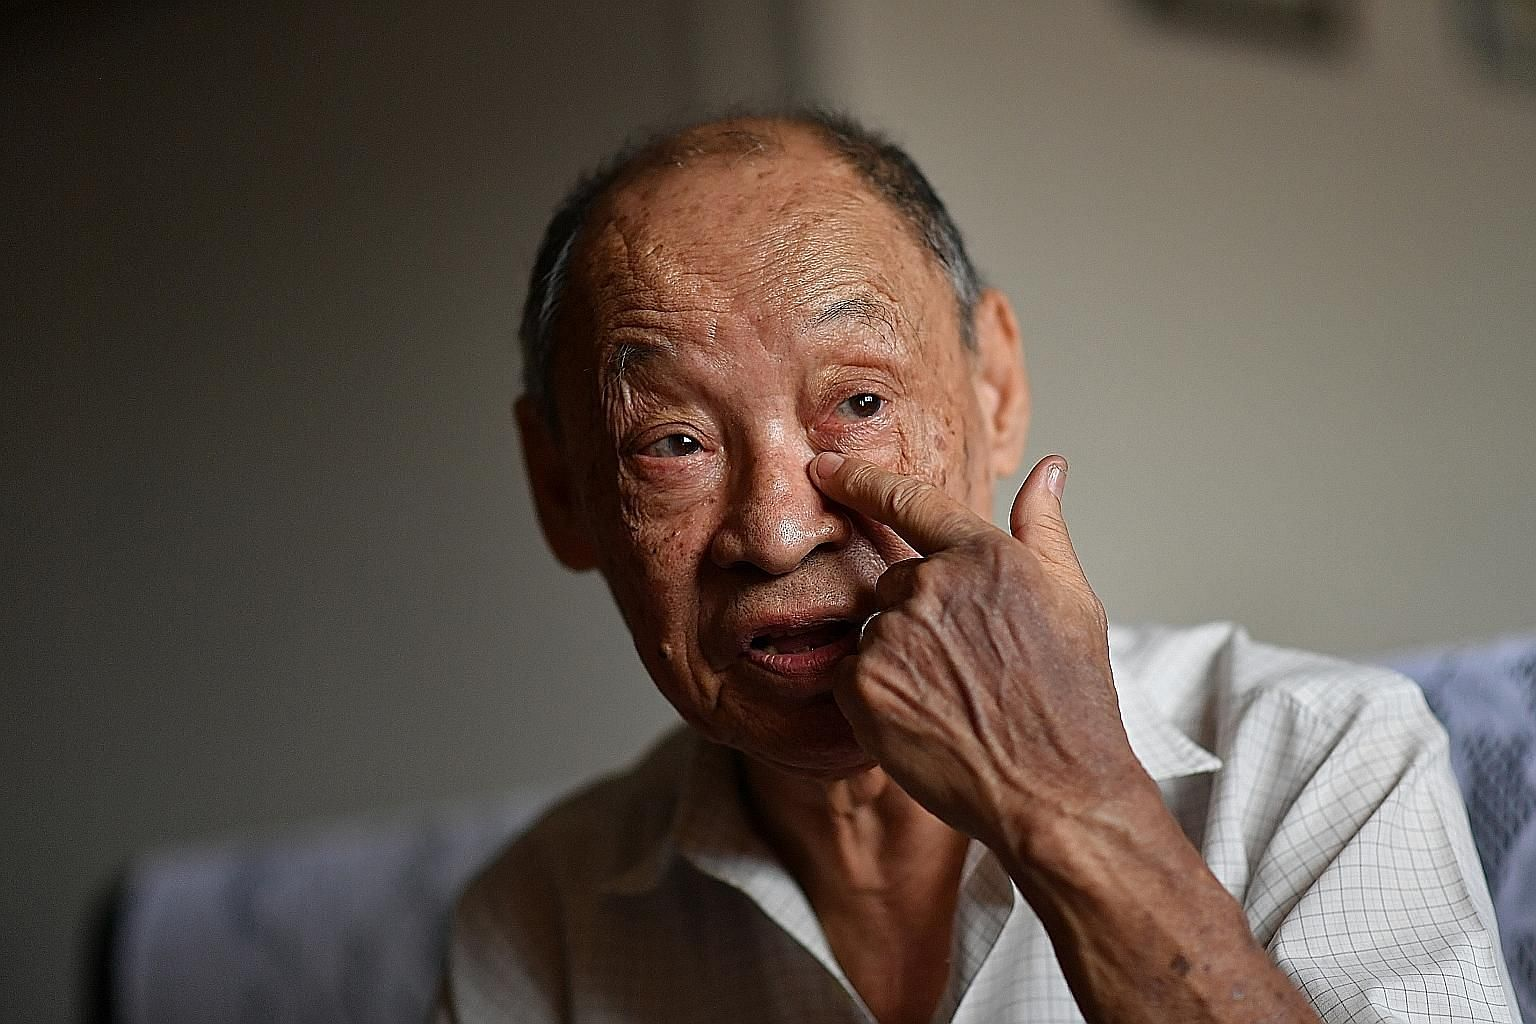 Mr Seow Ban Yam's subsidised bill for surgery to unblock the flow of his tears came to $4,477, but MediShield Life covered only $4.50.